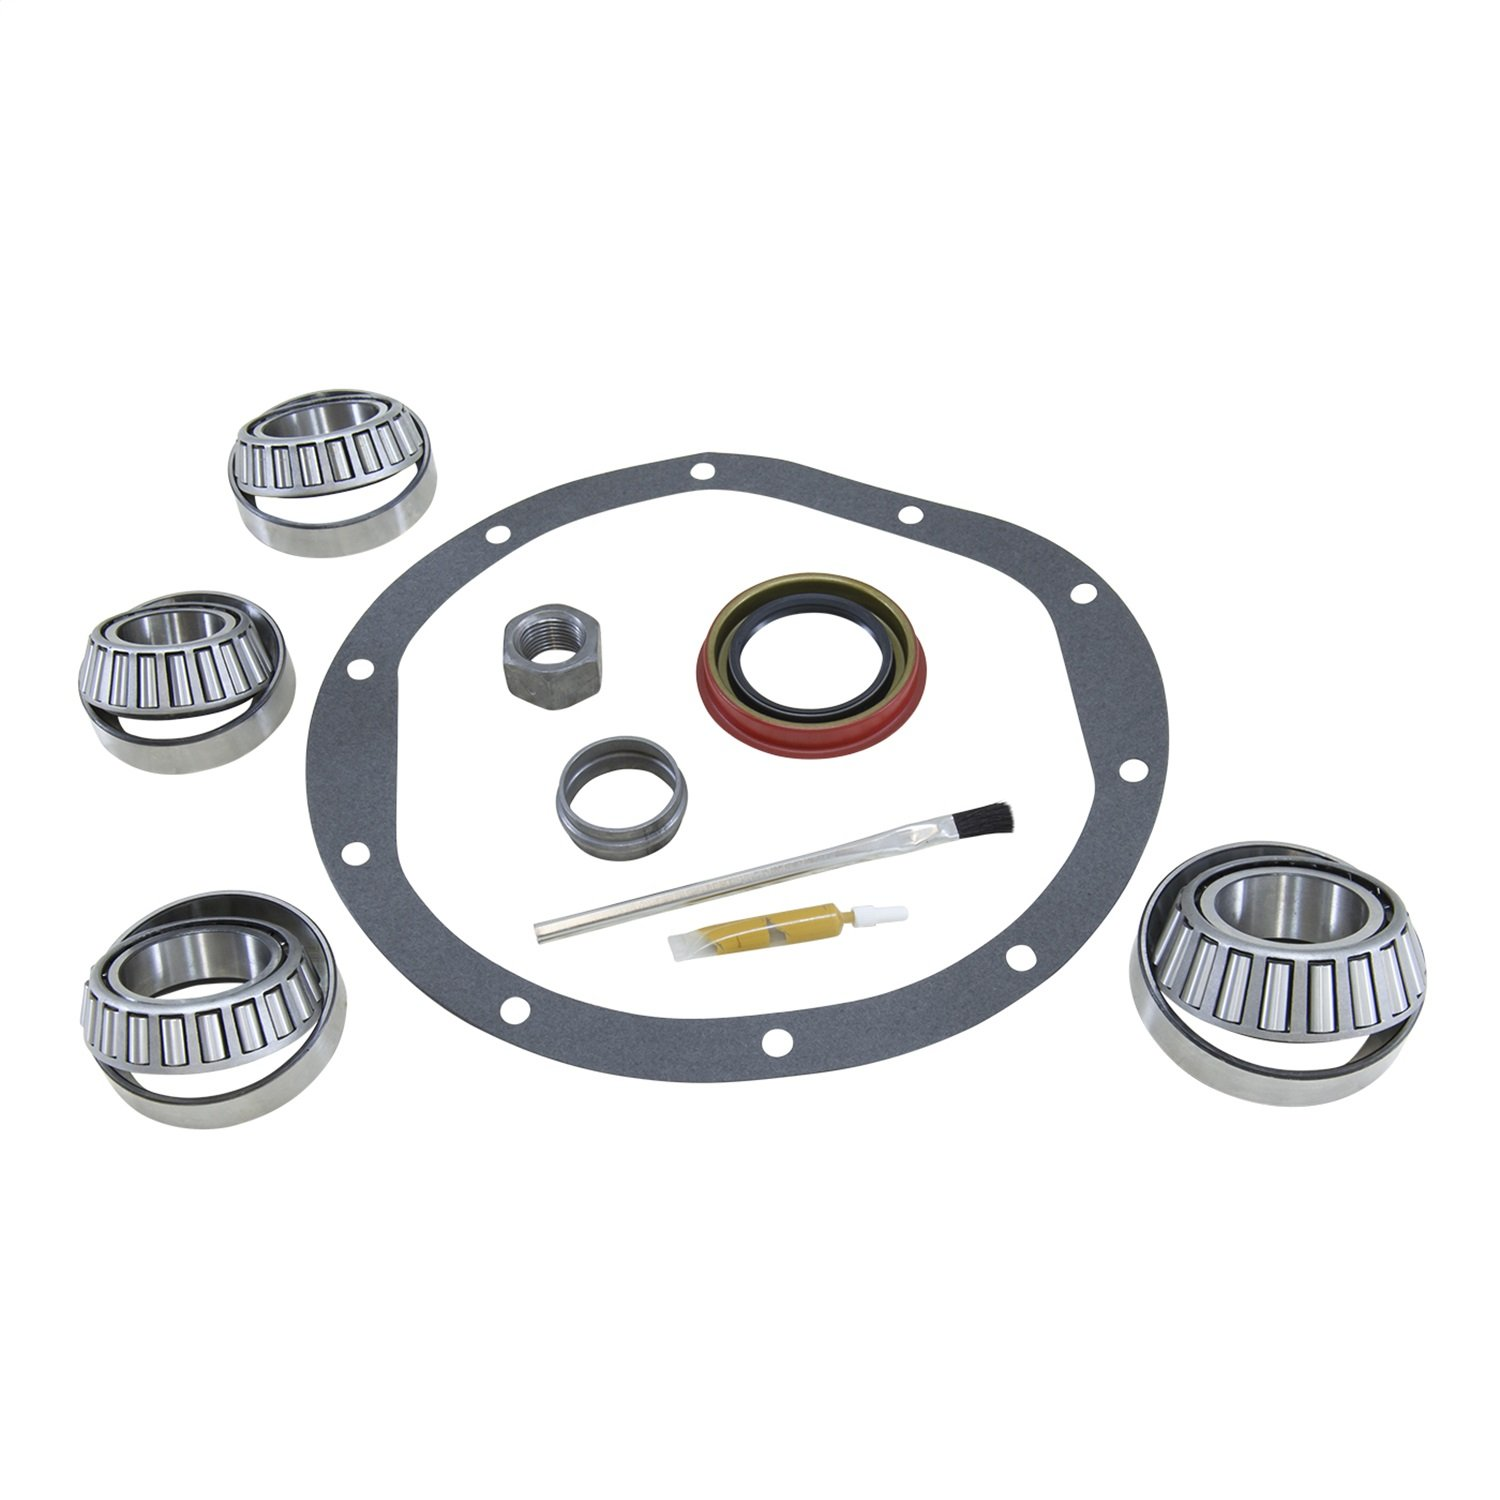 Yukon Gear & Axle (BK GM8.5-F) Bearing Installation Kit for GM 8.5 Front Differential